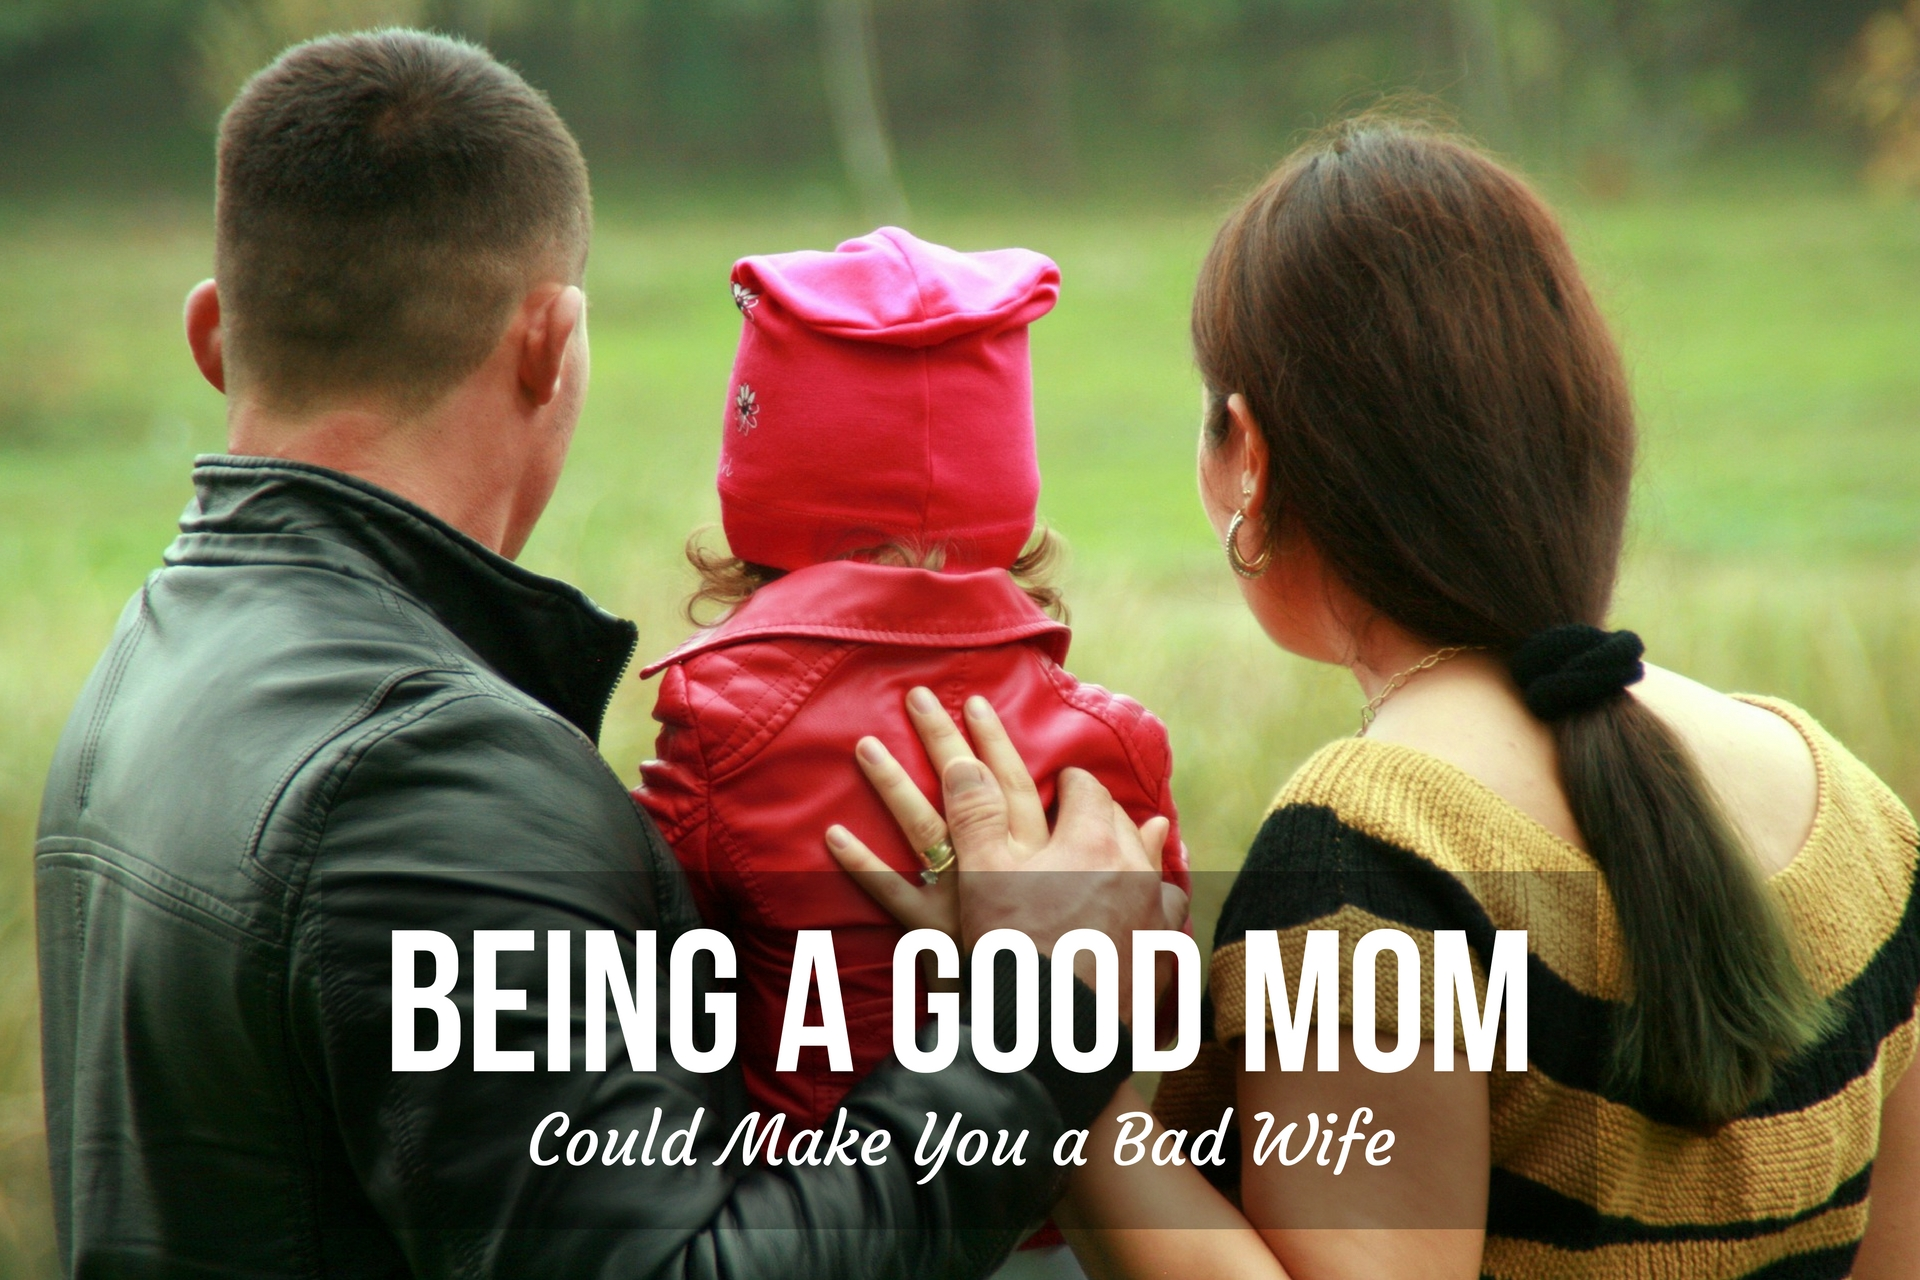 Being a Good Mom Could Make You a Bad Wife